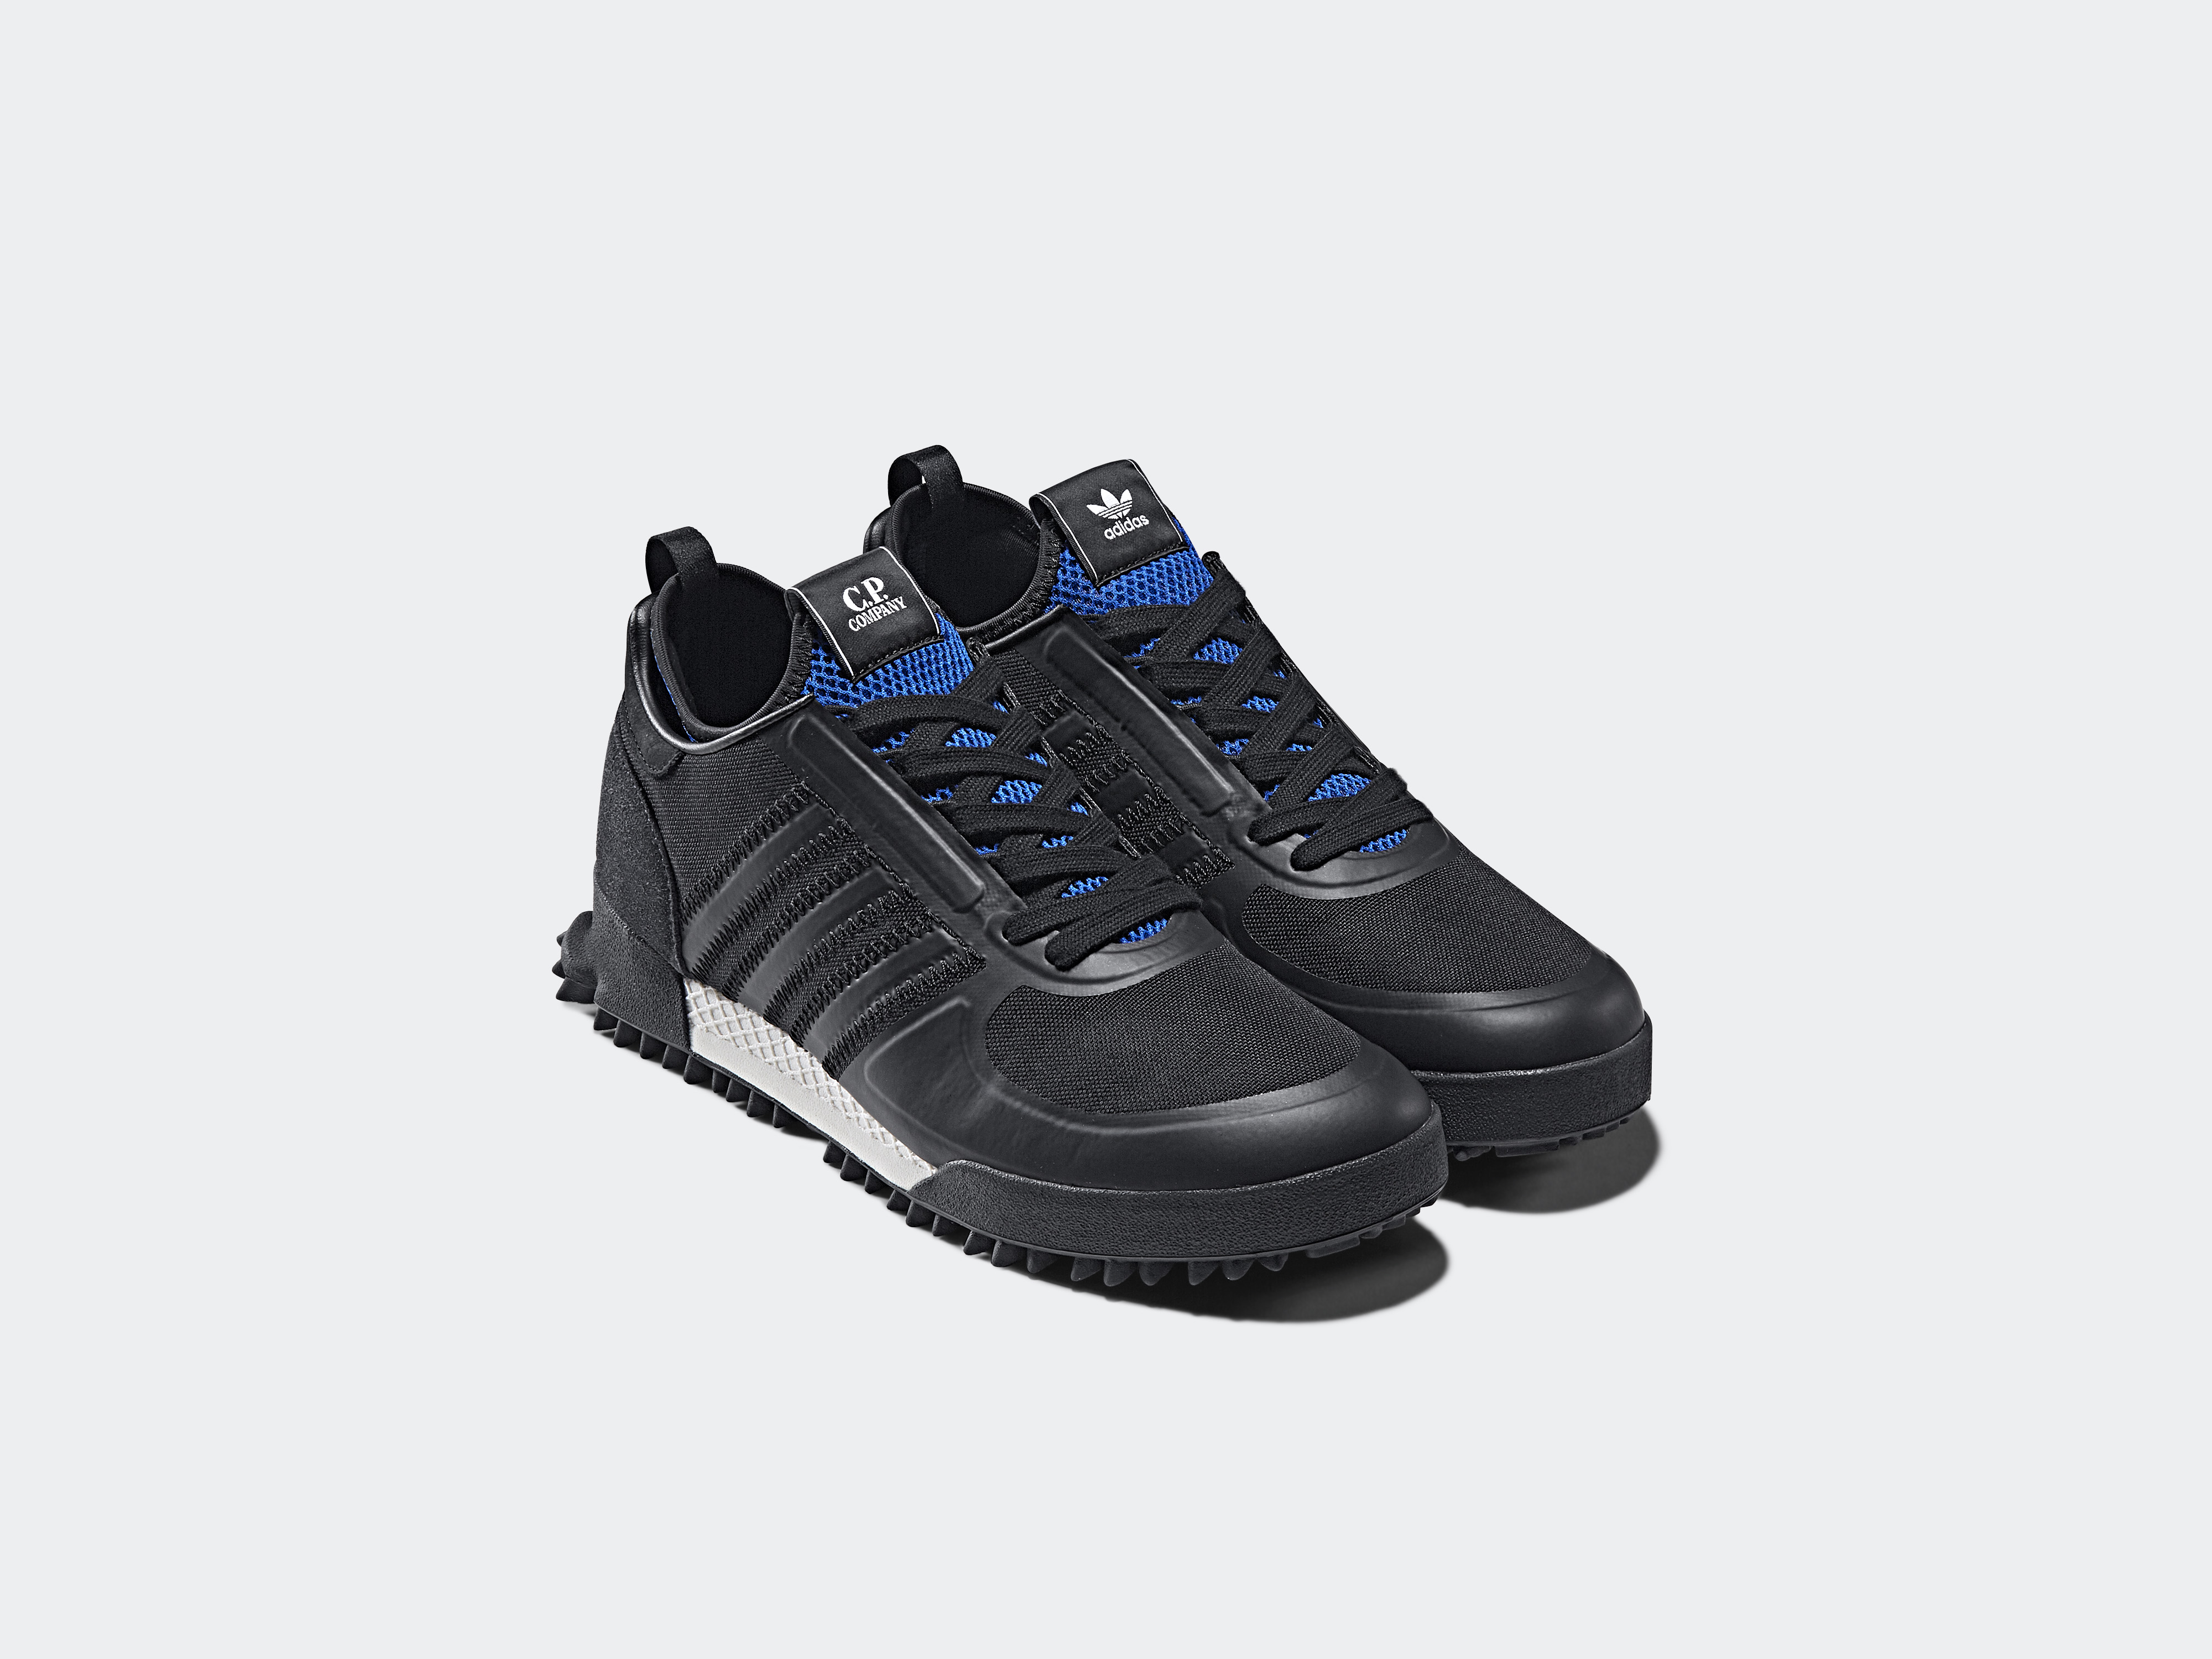 3b5a98720 Latest adidas   C.P. Company Sneakers  Where to Buy Online